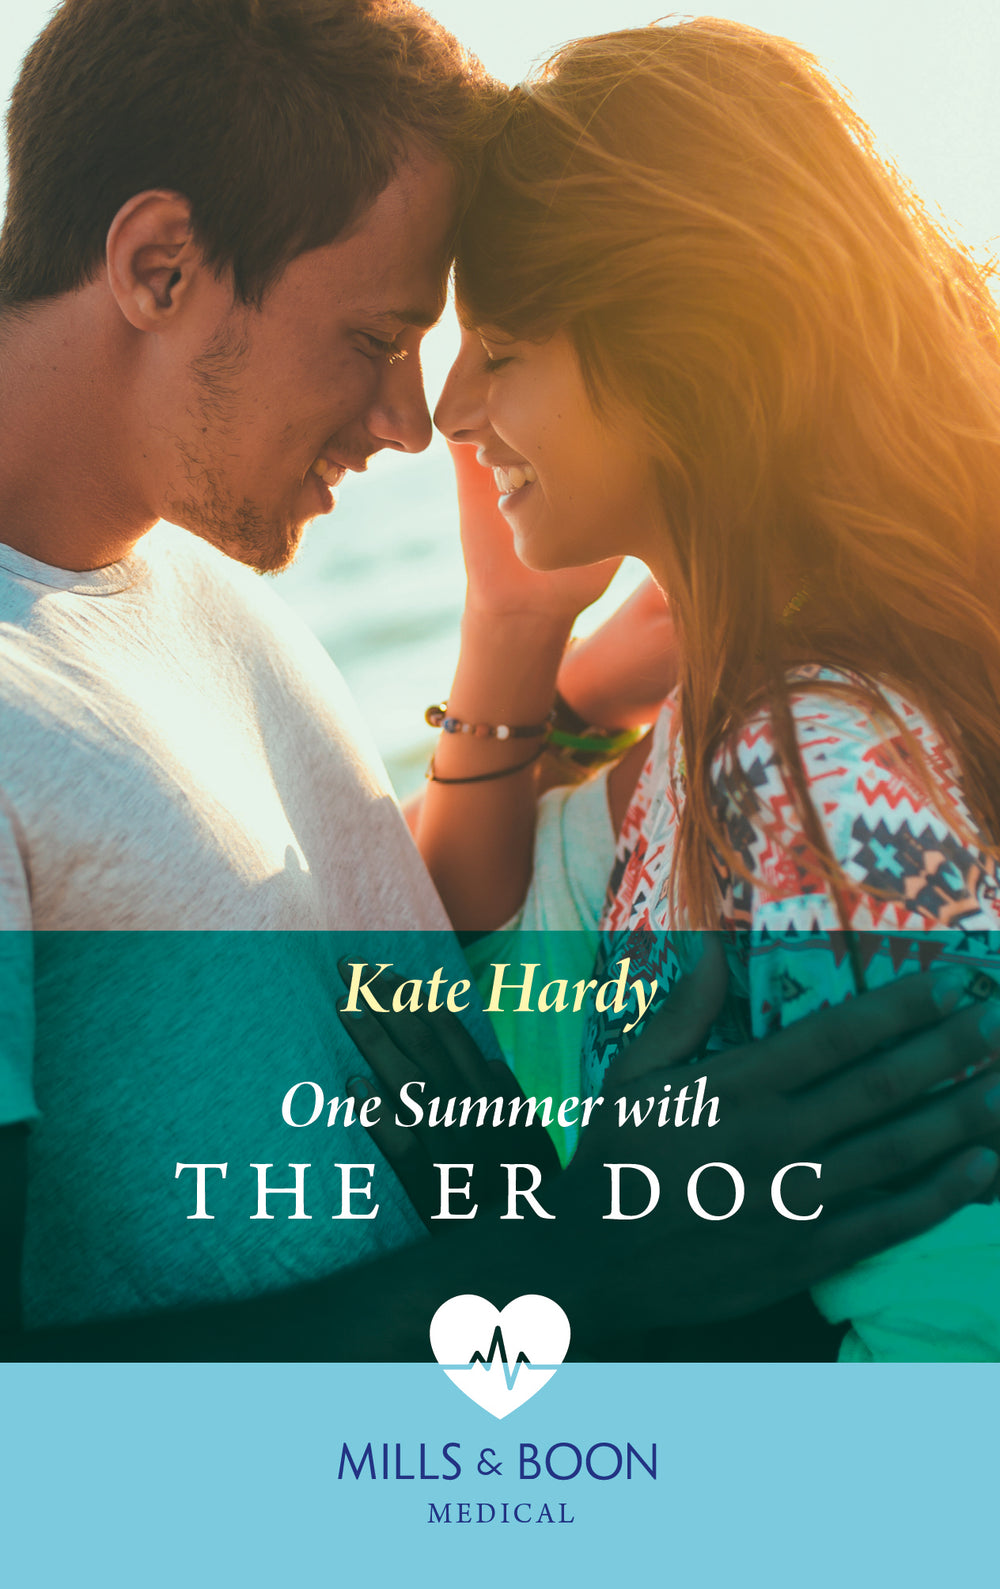 One Summer with the ER Doc - Chapter 3